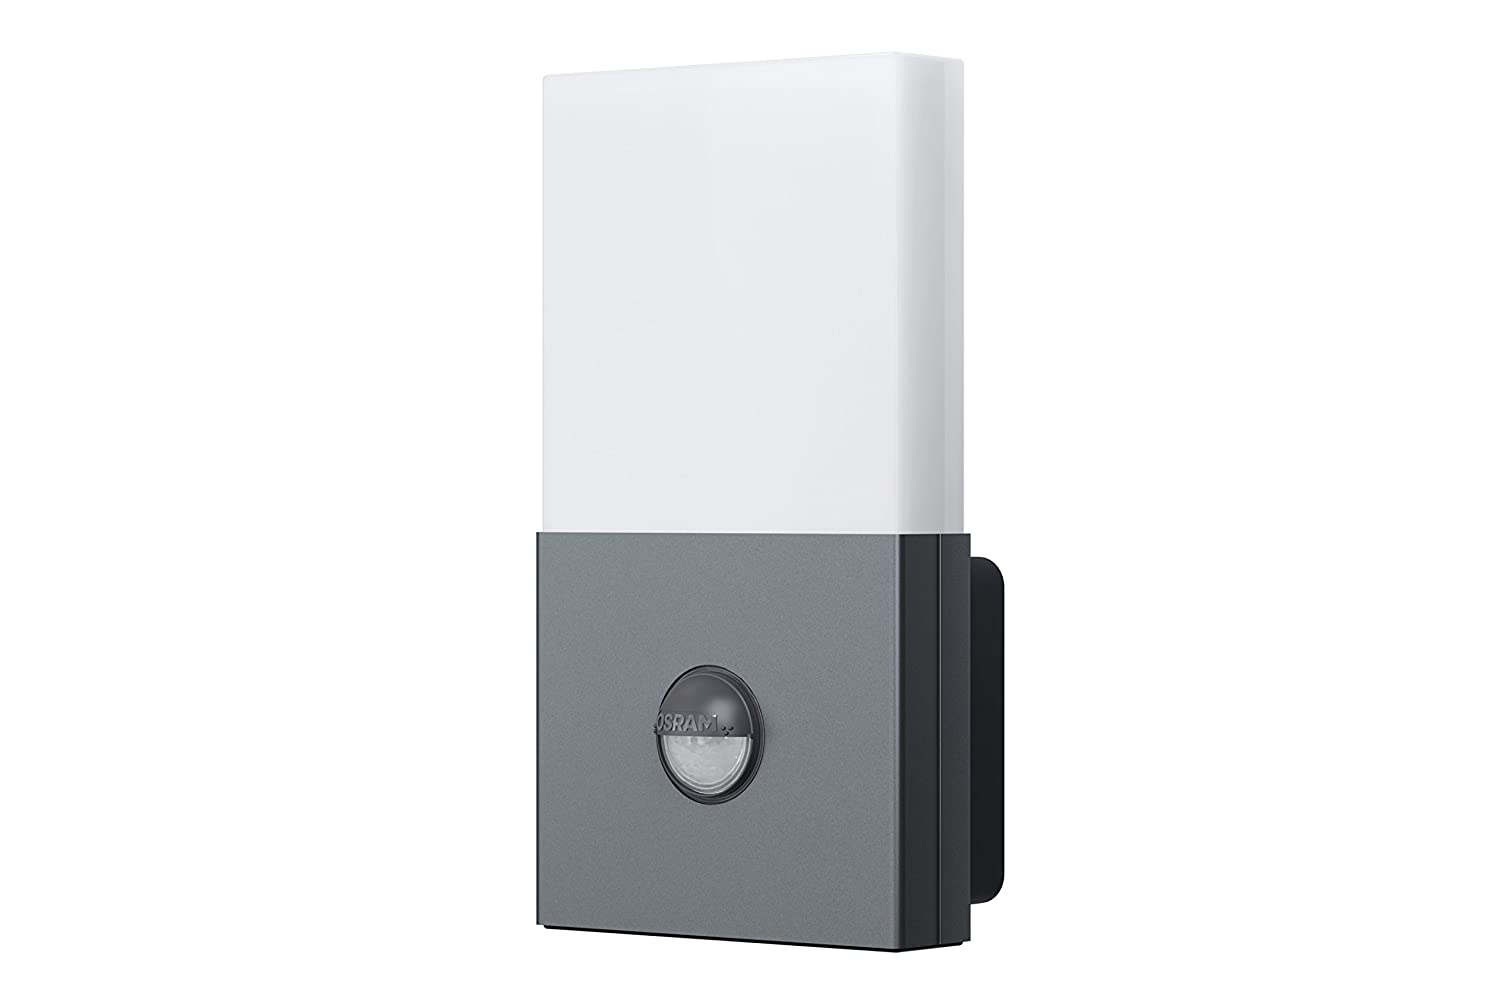 Osram 73280 Noxlite Wall - Lámpara doble de pared LED para exterior, con sensor de movimiento y claridad (2 bombillas, 6 W): Amazon.es: Iluminación